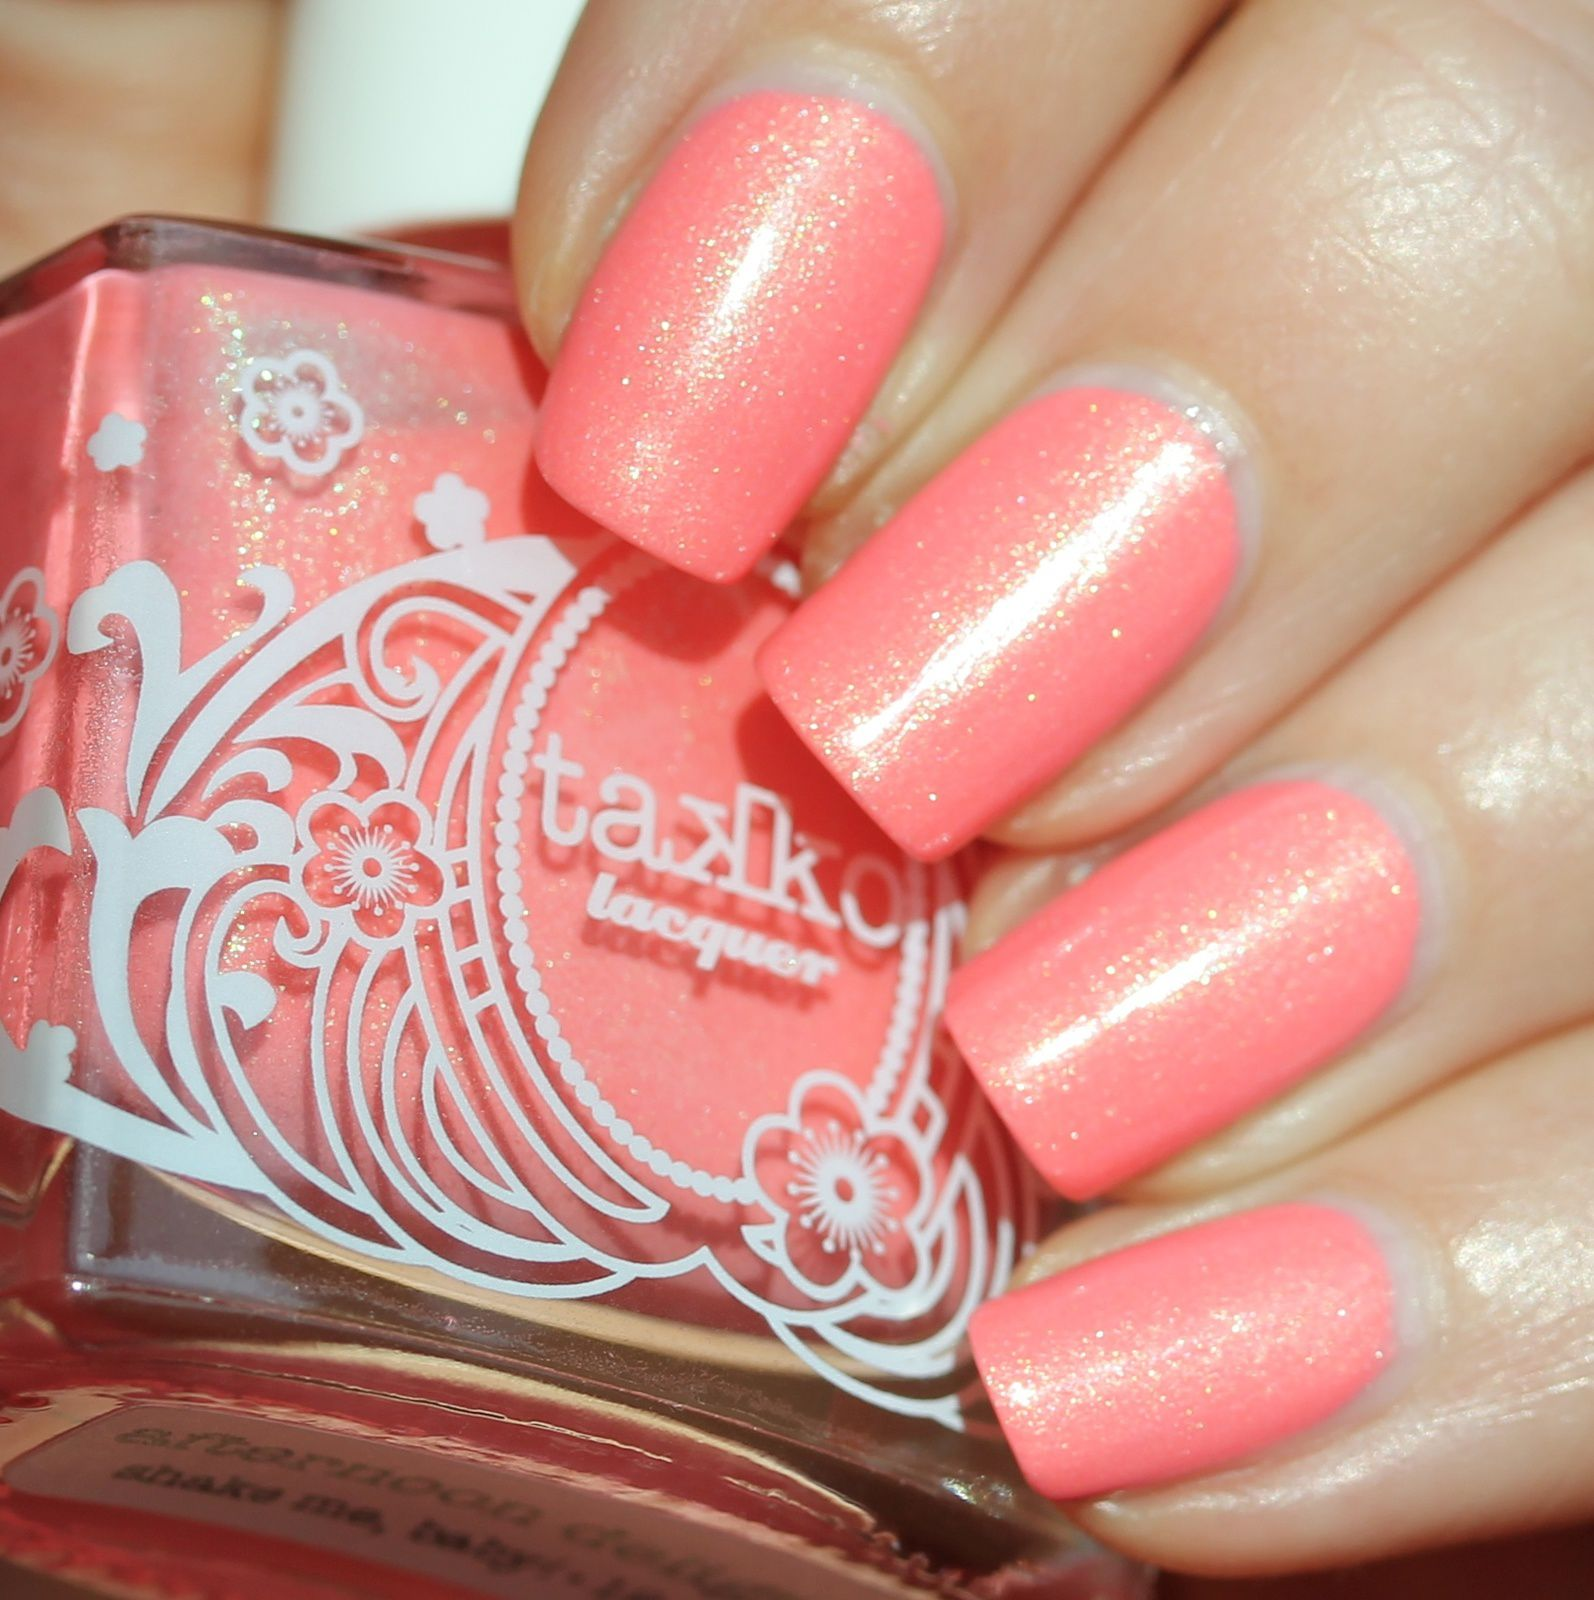 Duri Rejuvacote / Takko Lacquer Afternoon Delight / Sally Hansen Miracle Gel Top Coat